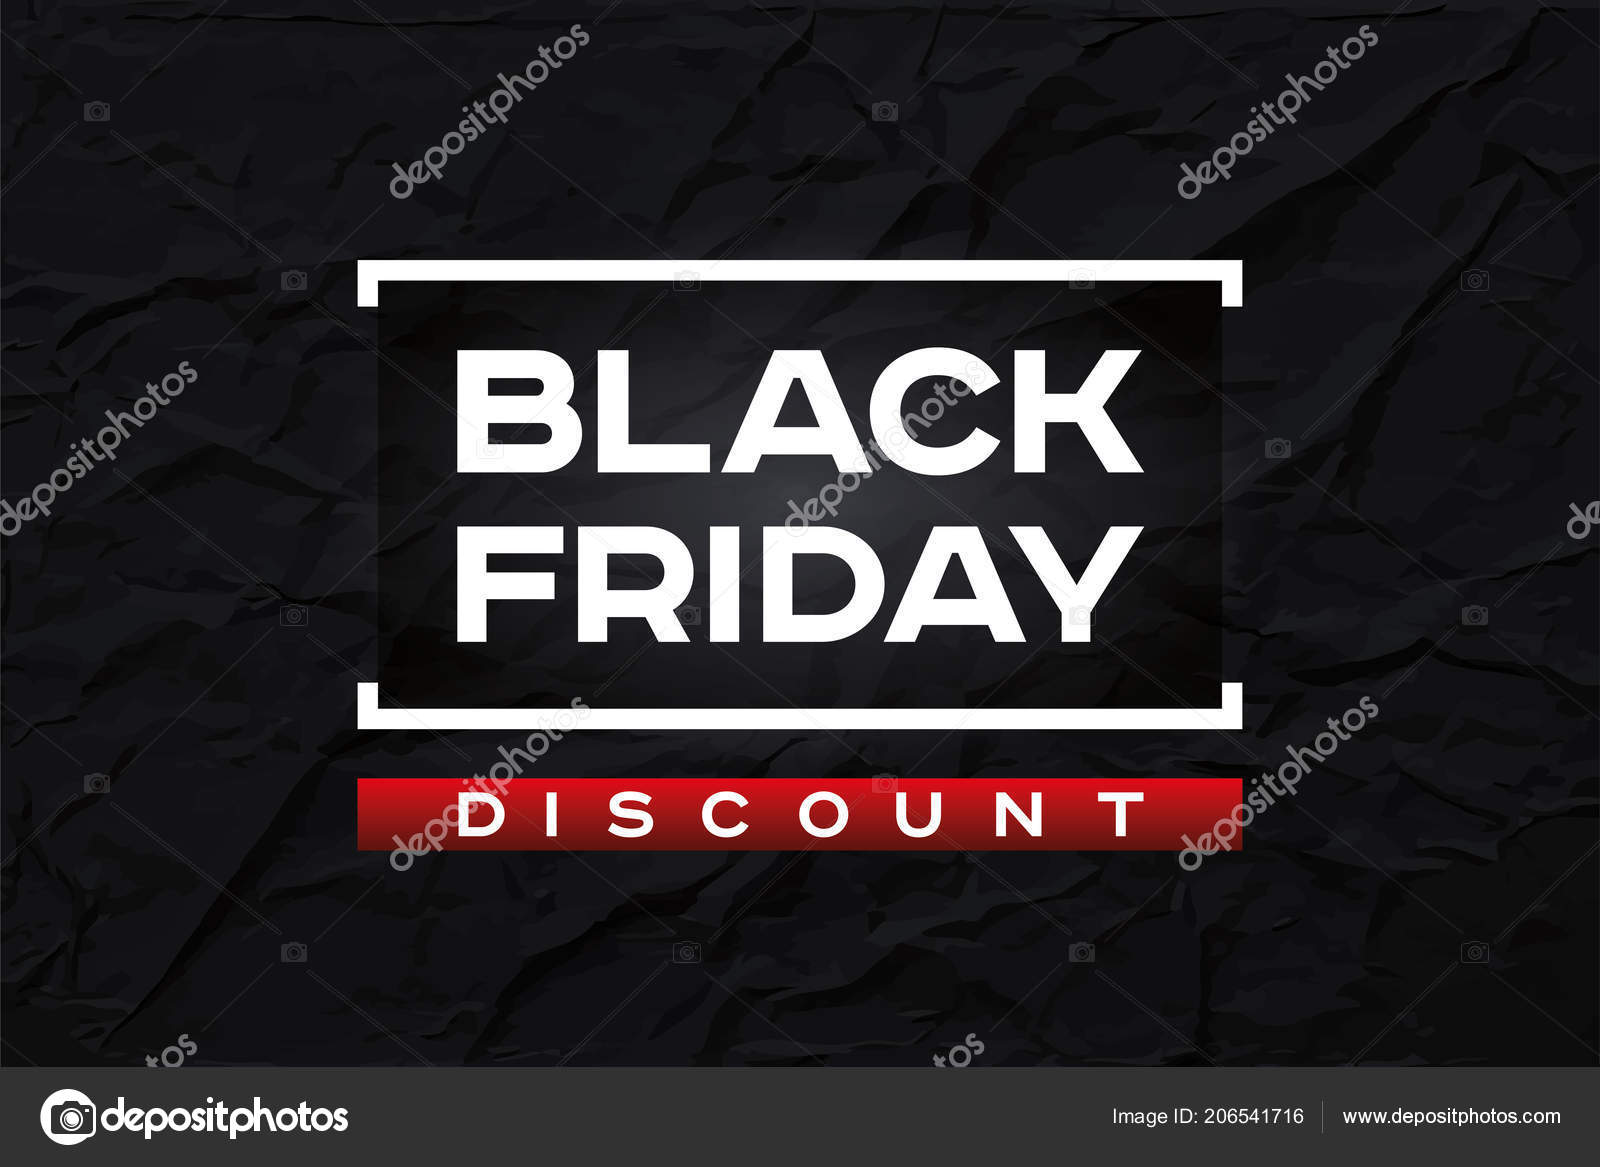 Black Friday Rabatt Black Friday Rabatt Dunkle Faltige Papierstruktur Abstrakte